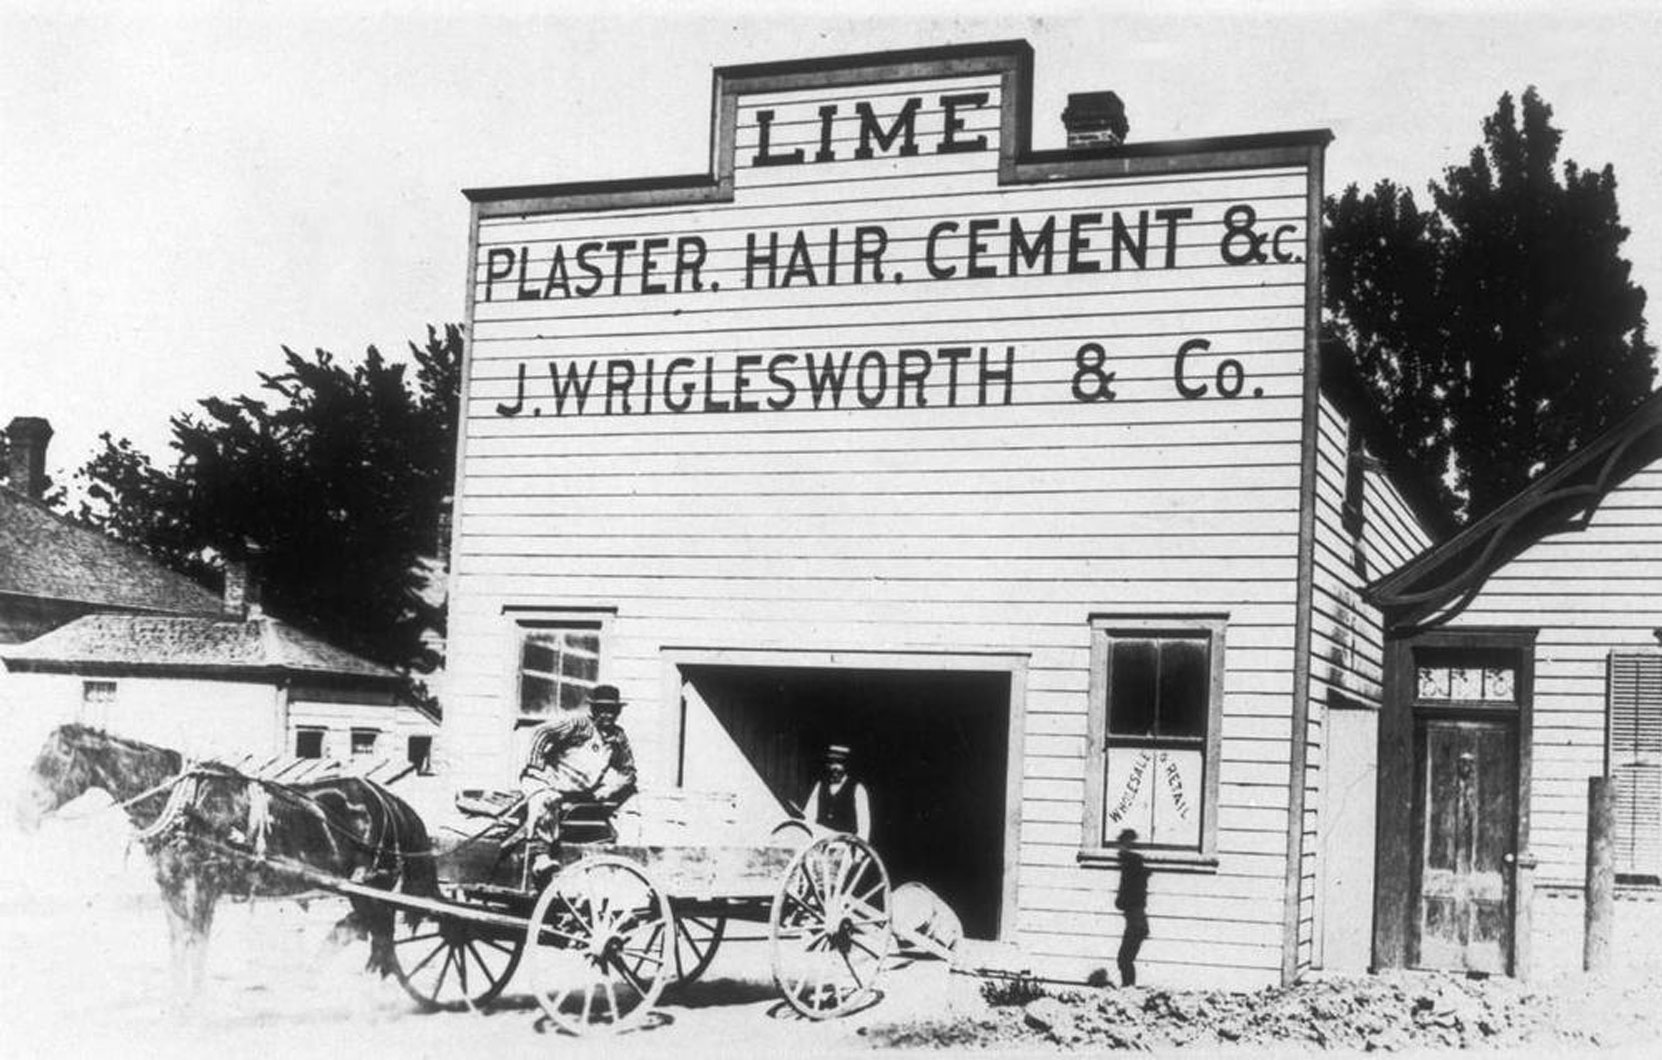 Joseph Wriglesworth & Co., Lime Dealers, on the south east corner of Yates Street and Blanshard Street in downtown Victoria, circa 1887 (BC Archives photo A-03469)